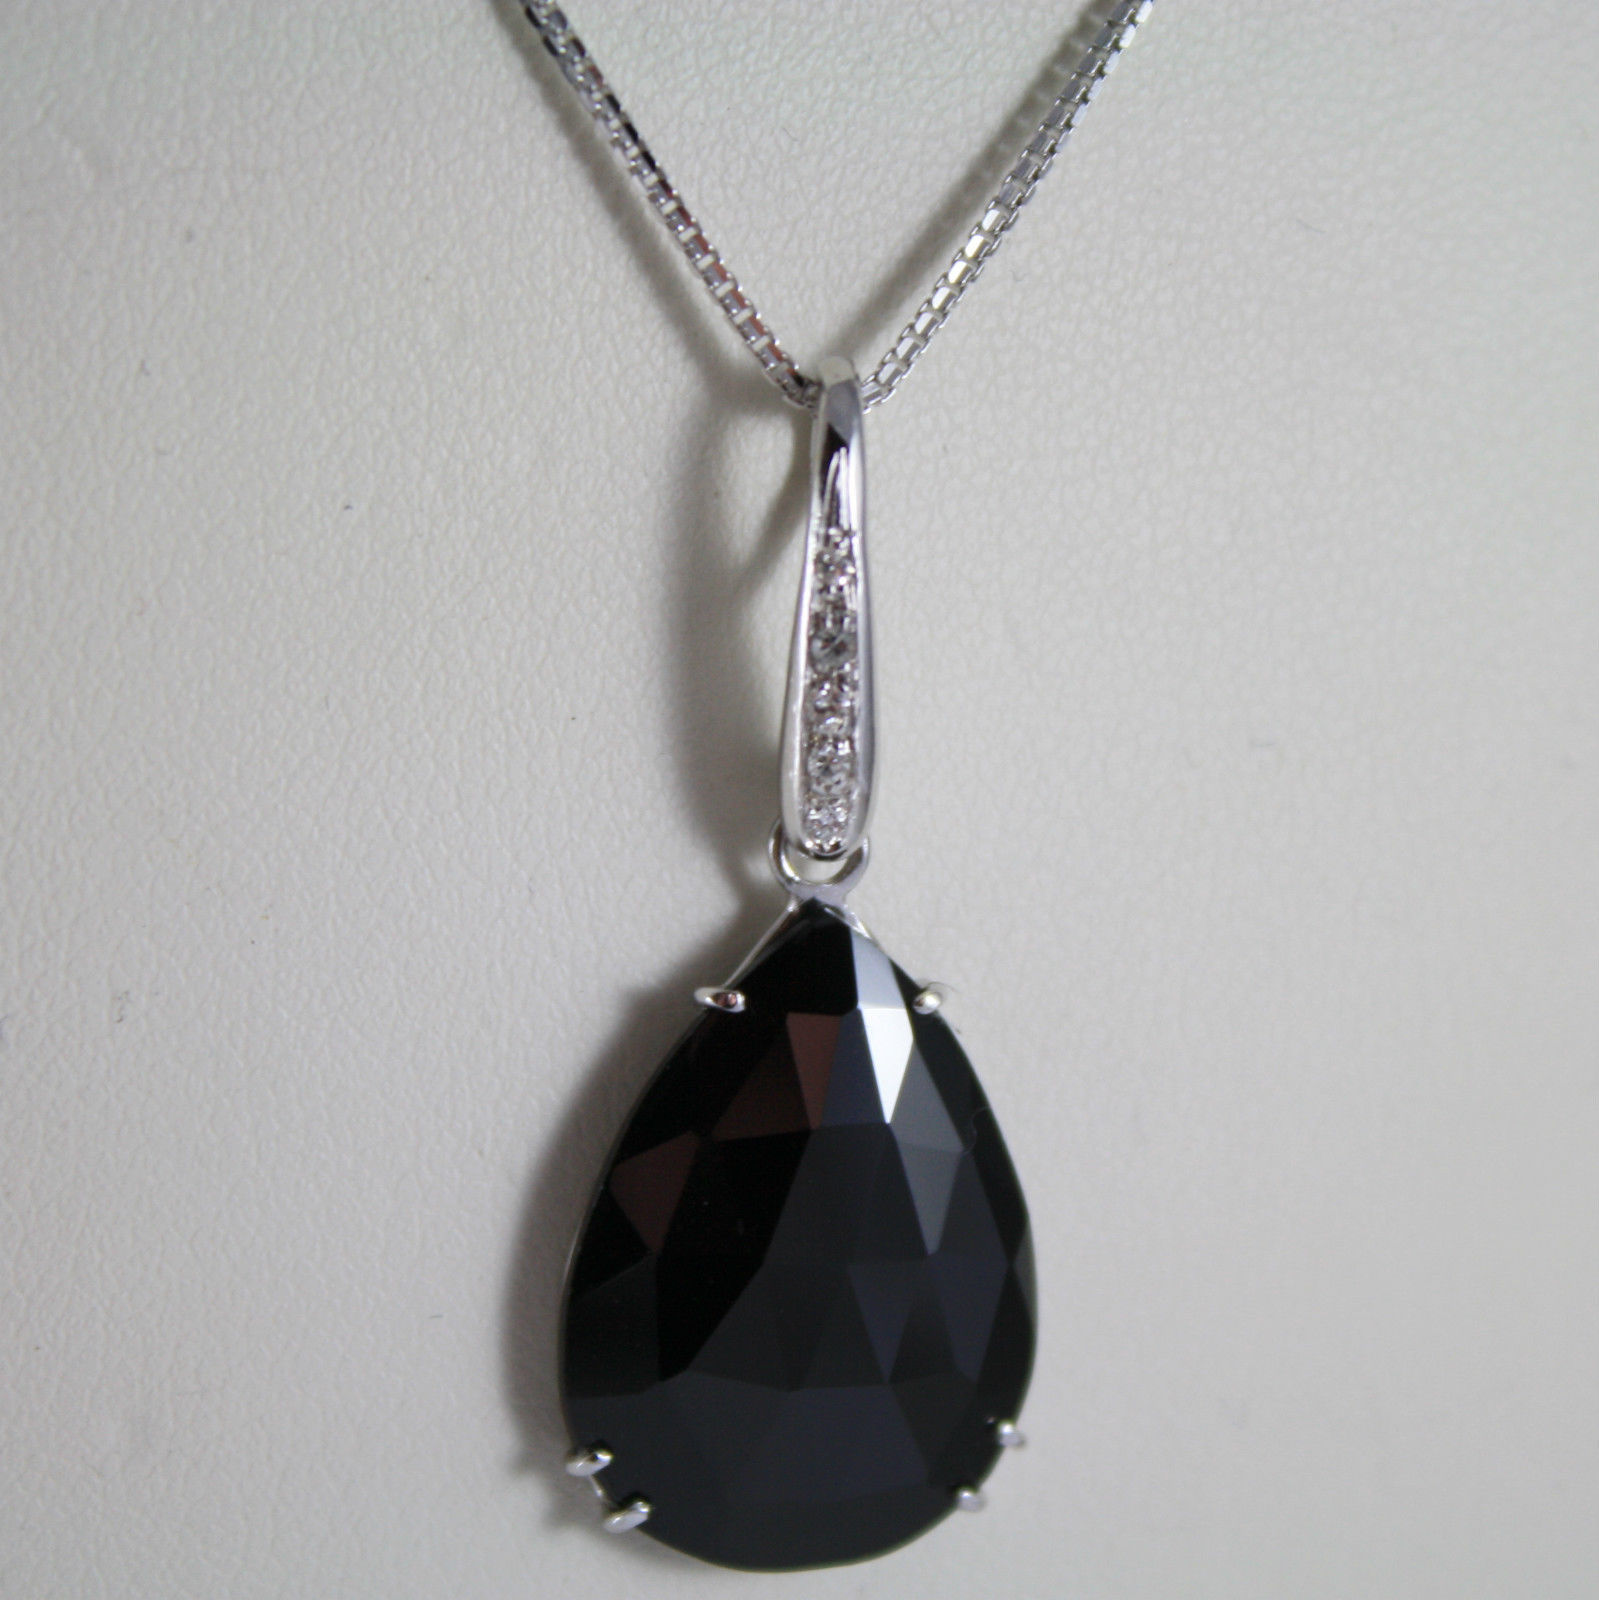 18K WHITE GOLD NECKLACE, DIAMOND CT 0.07, DROP BLACK SPINEL CT 9.5 MADE IN ITALY